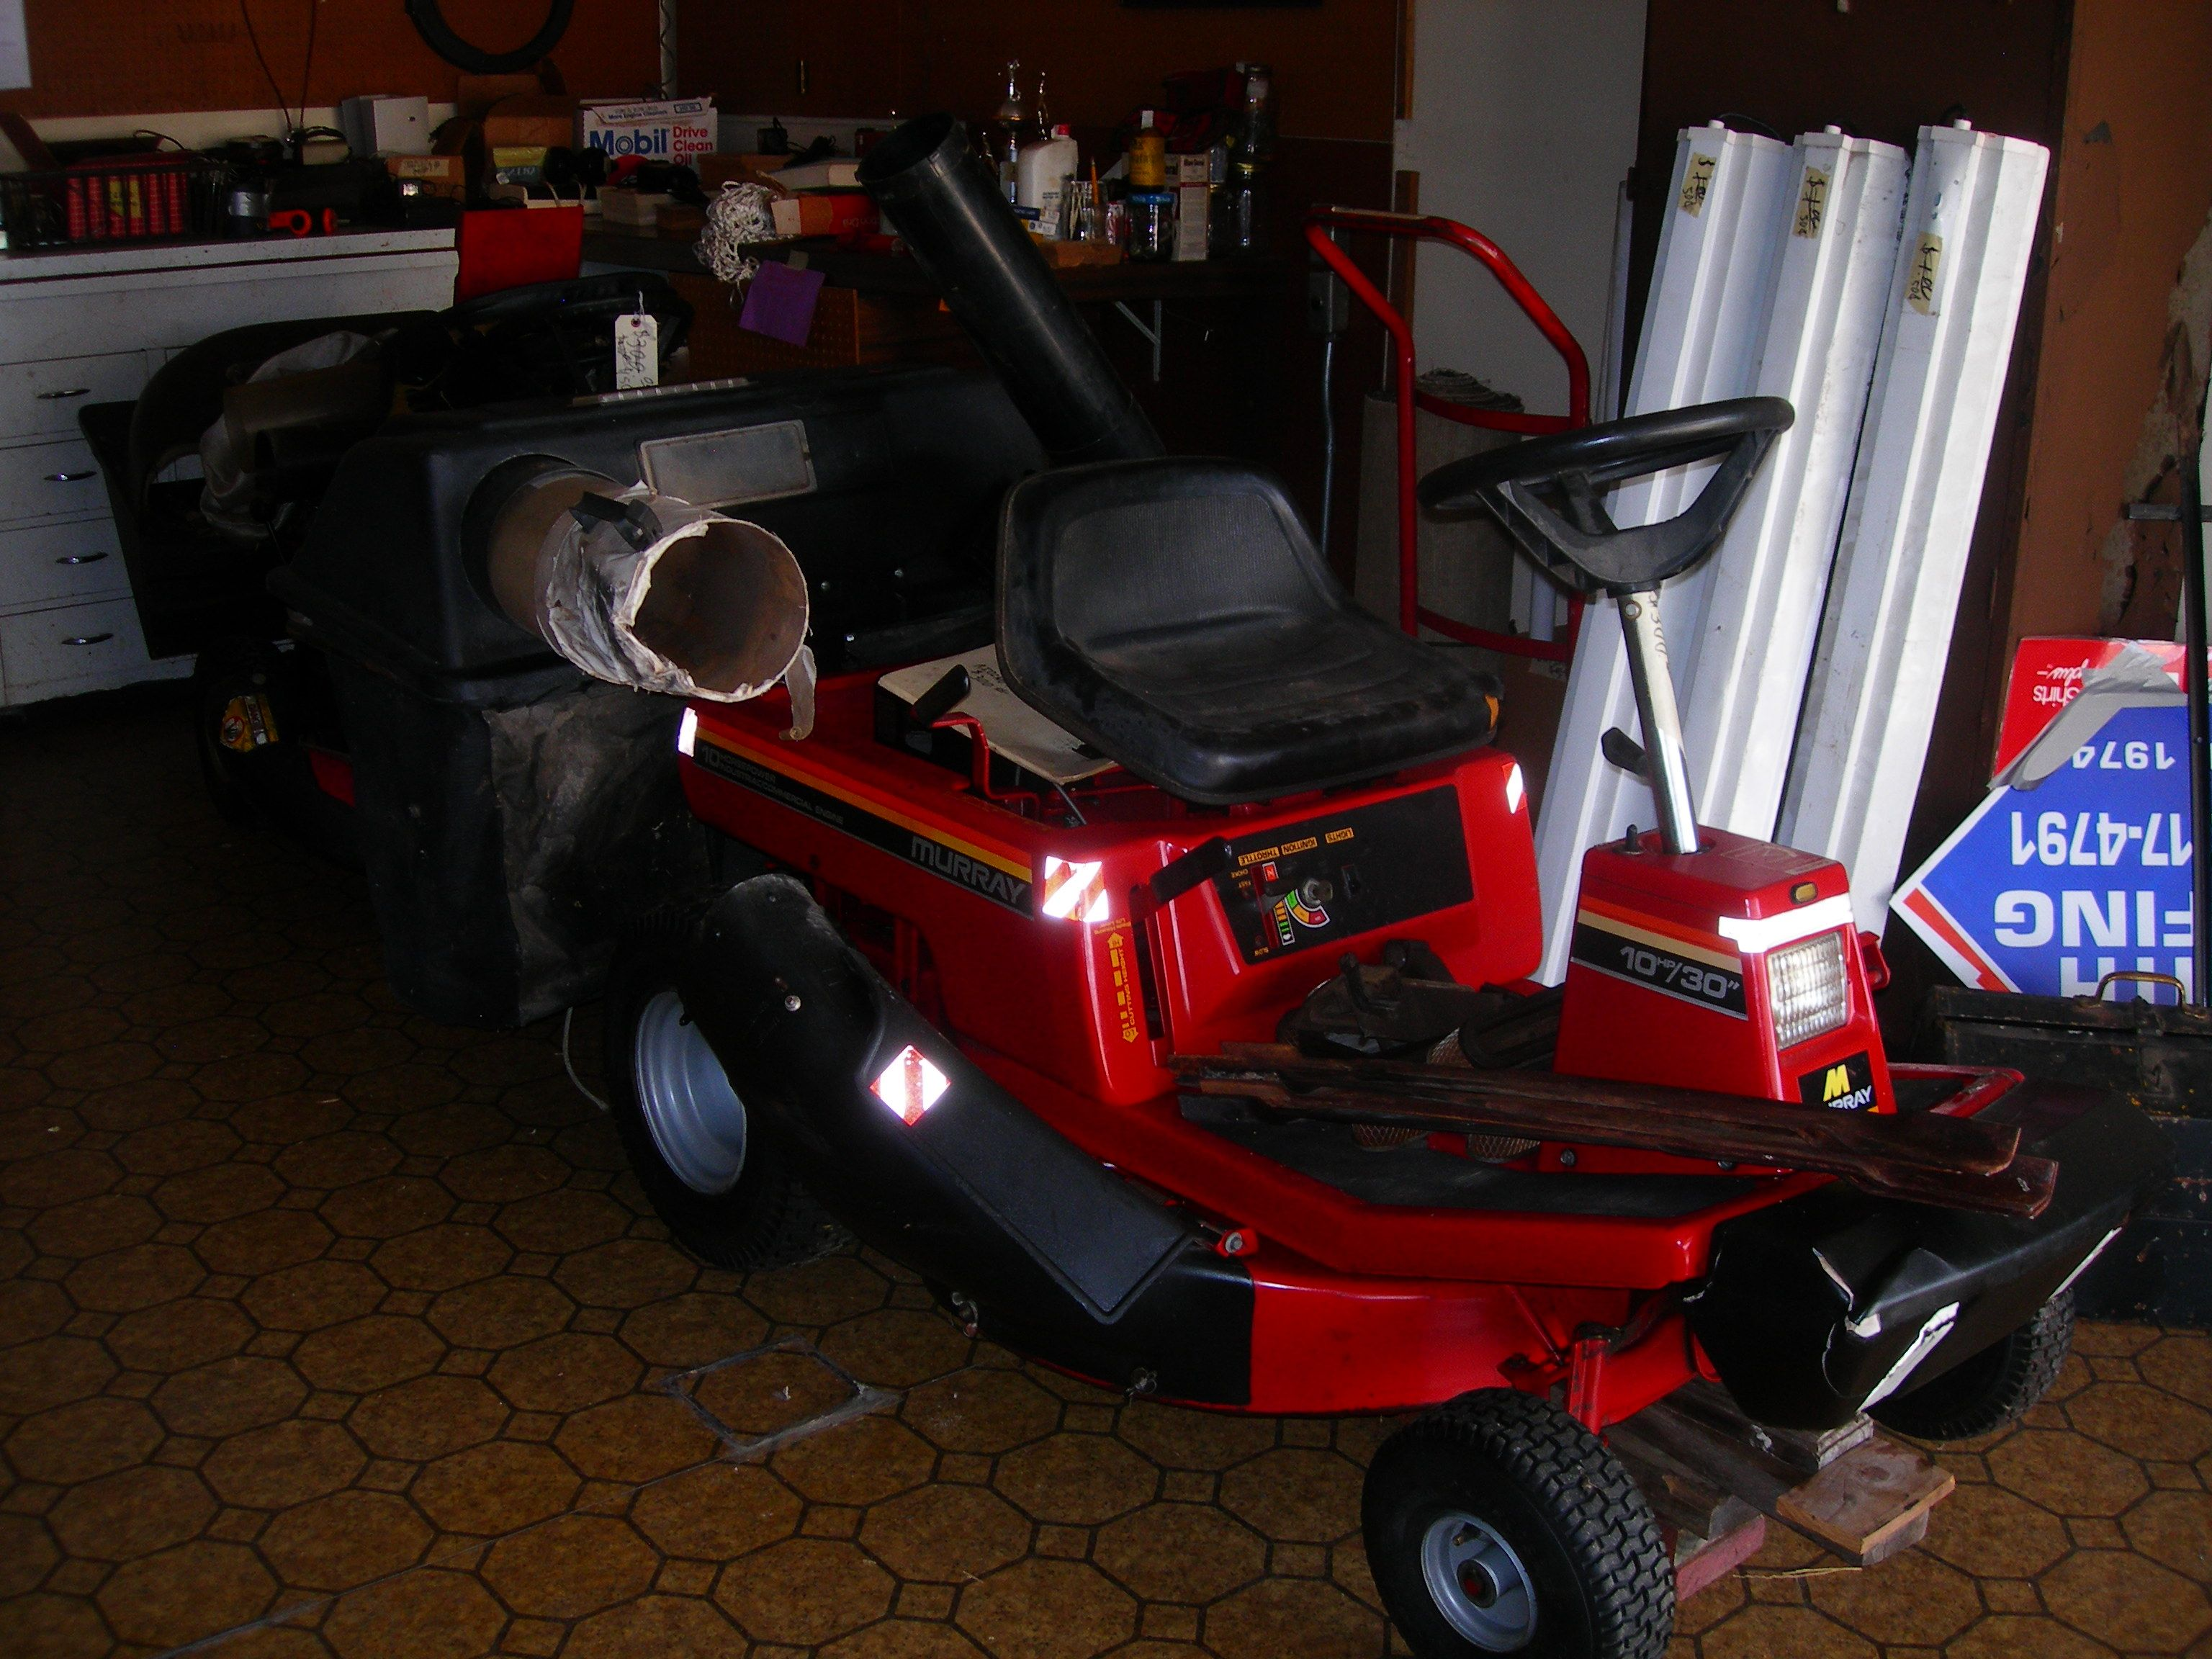 Riding Lawn Mower In Blc2beans Garage Sale North Richland Hills Tx Murray Tractor Wiring Harness For 30000 30 10 Hp Tecumseh Engine With A Grass